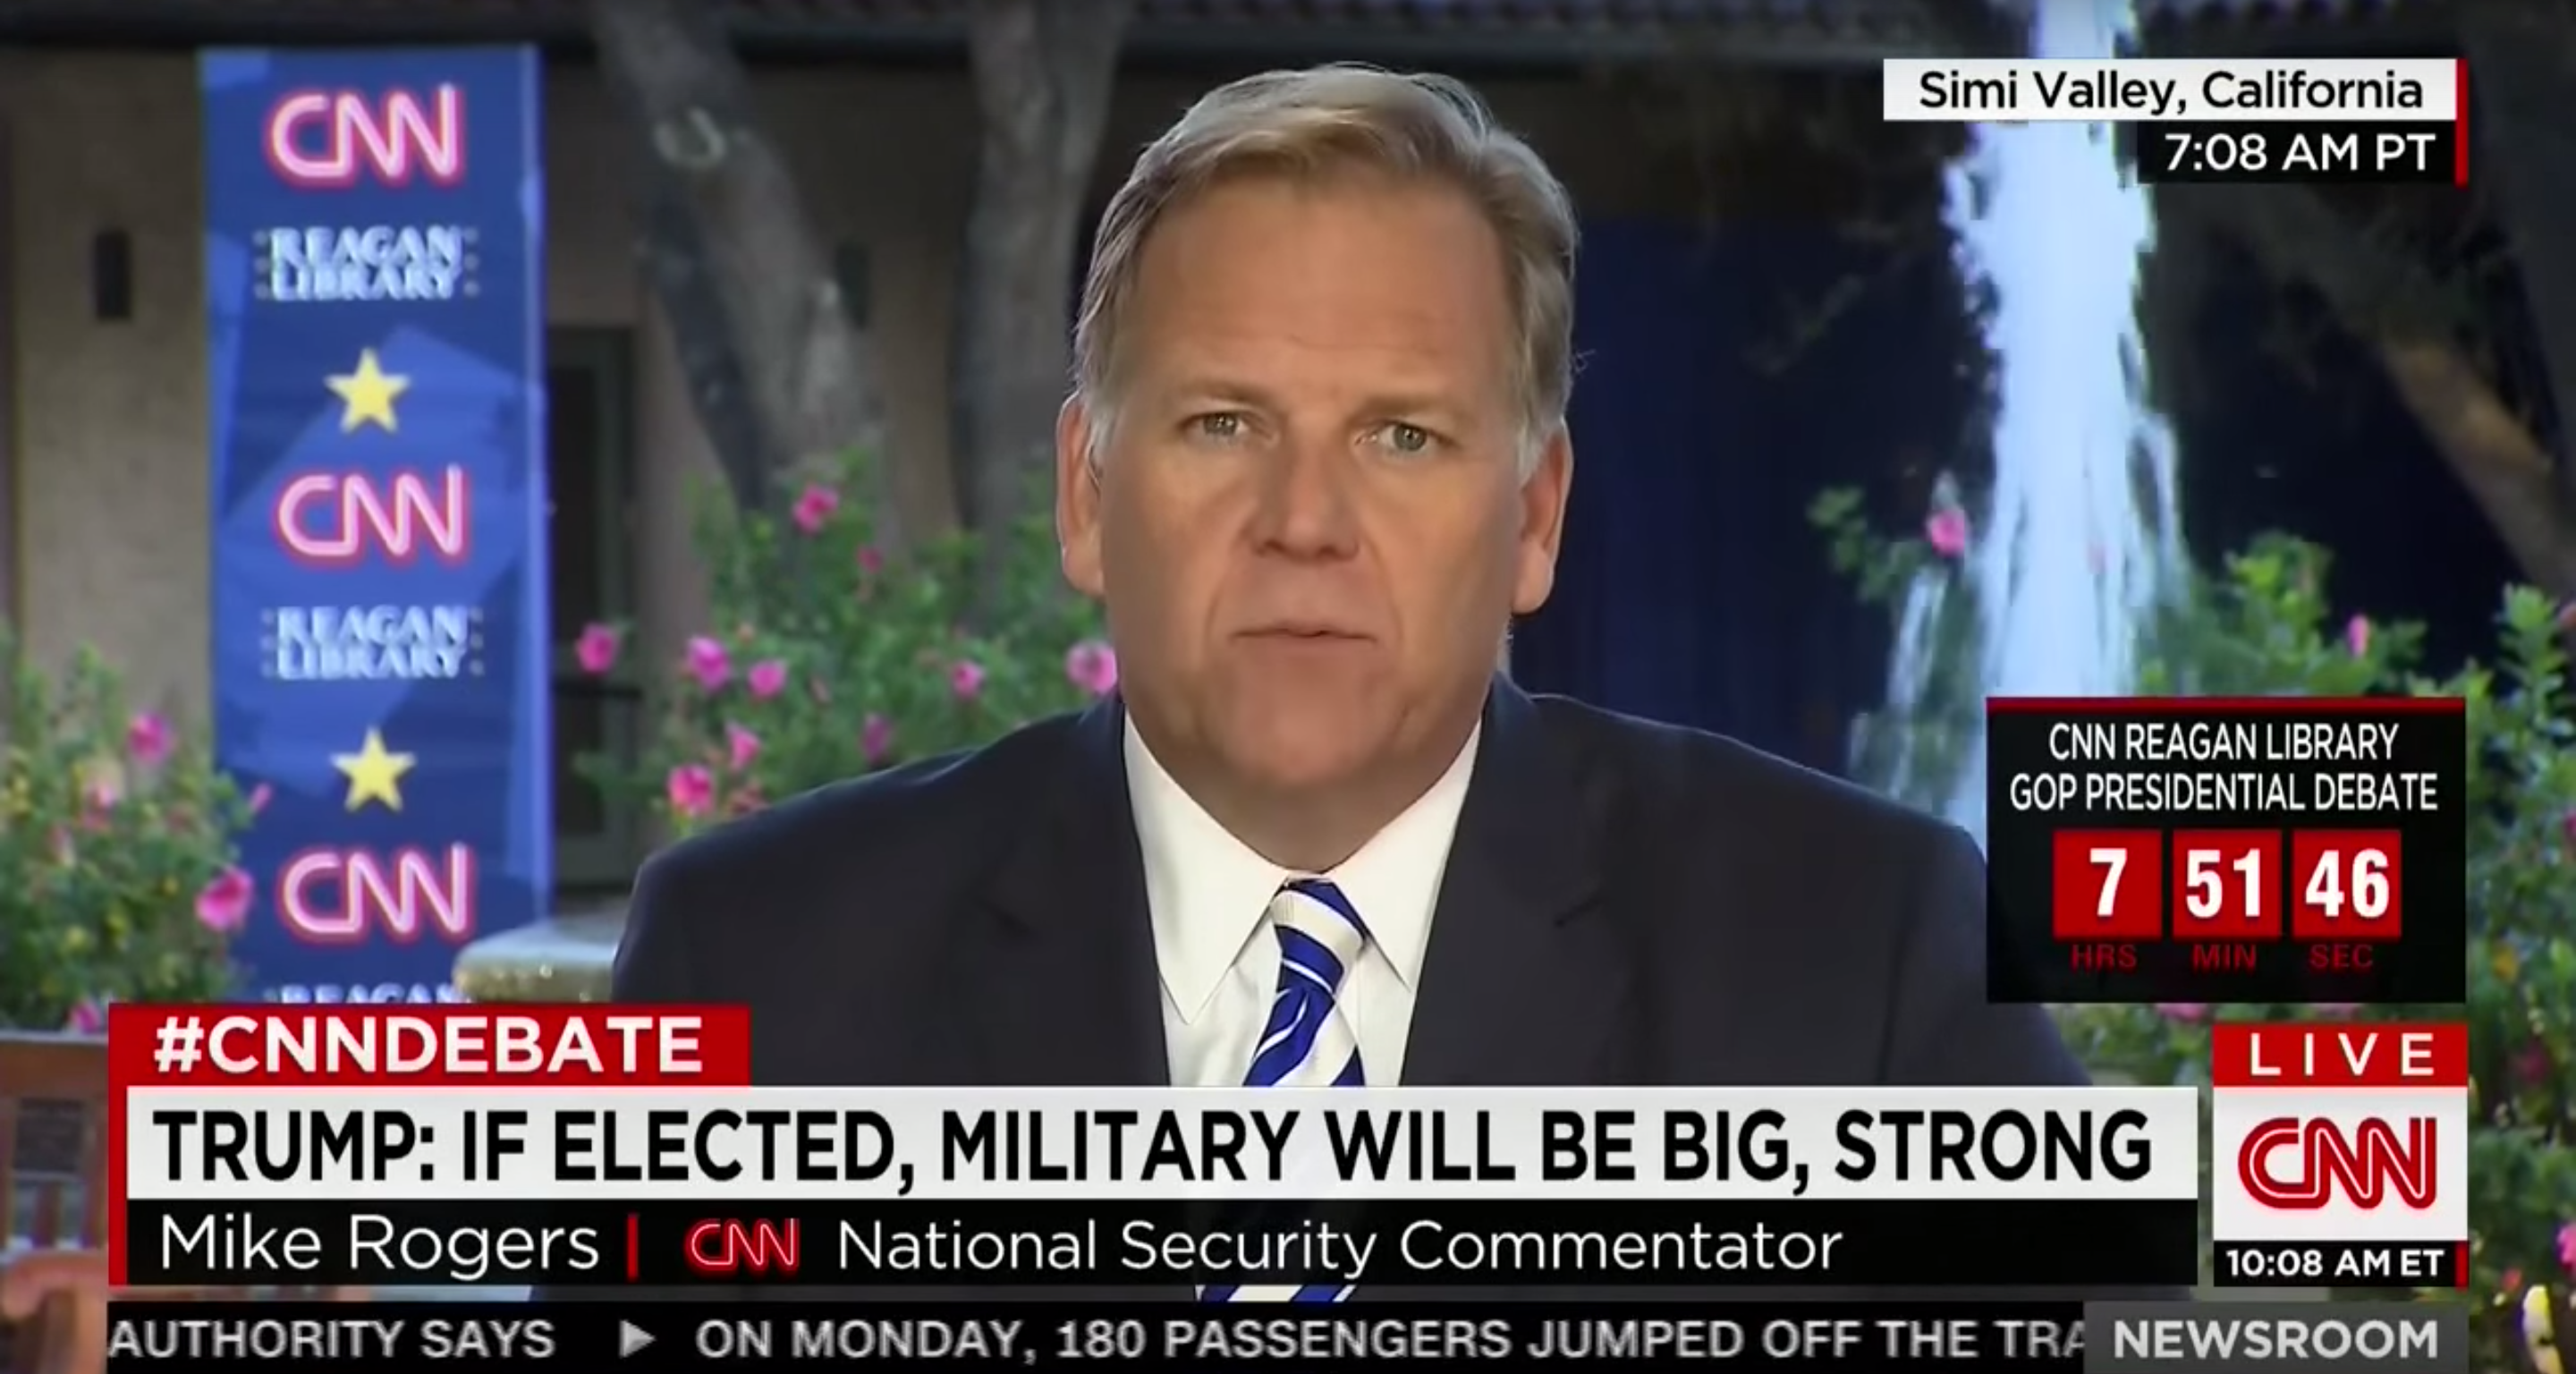 Mike Rogers on the Strength of Candidates' Foreign Policy, CNN, September 16, 2015